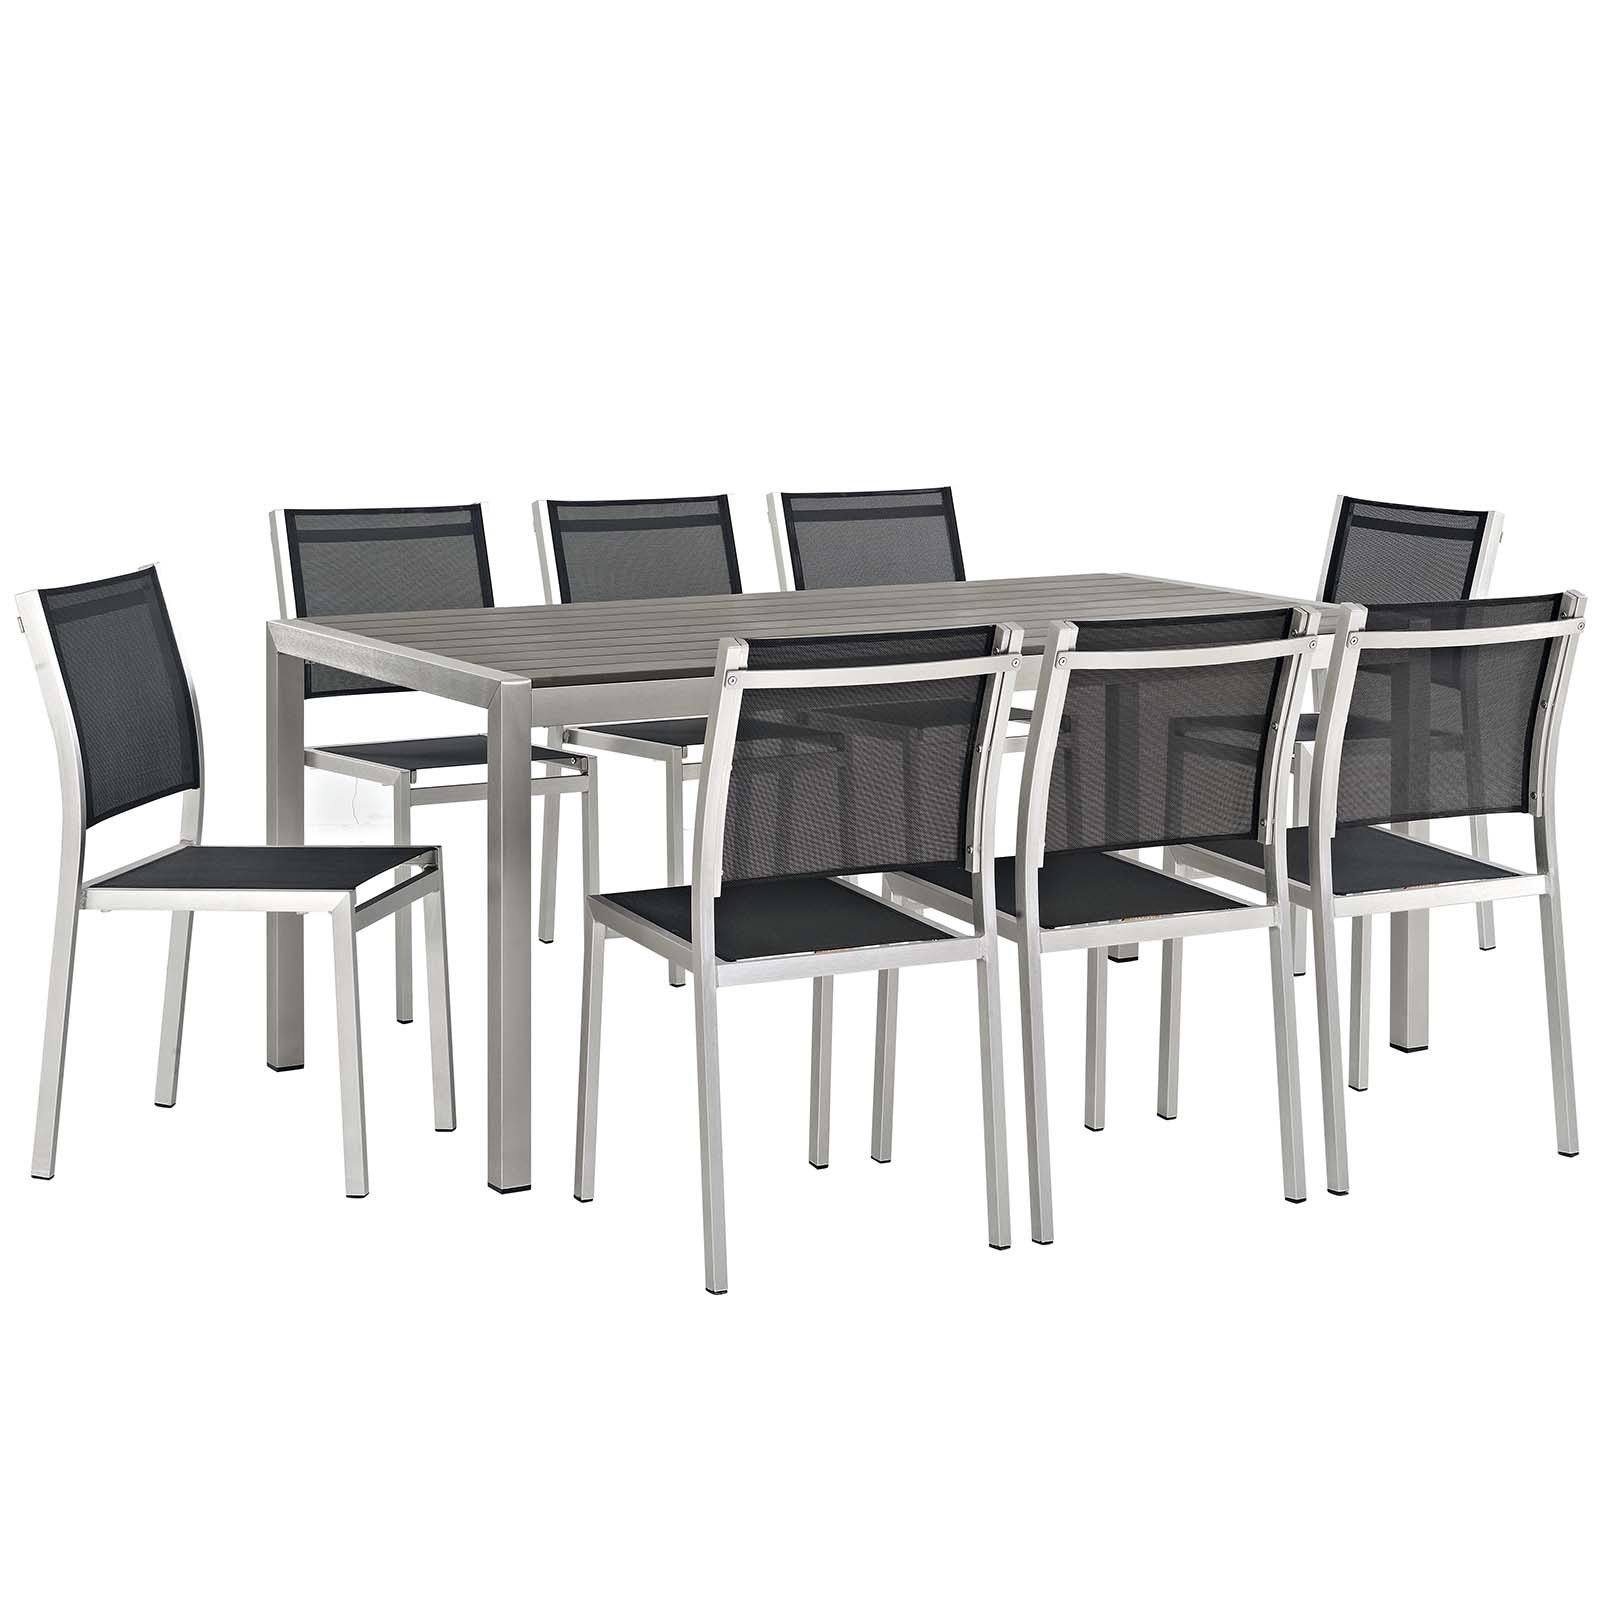 Modway Shore 9-Piece Outdoor Patio Aluminum Dining Set, Silver Black